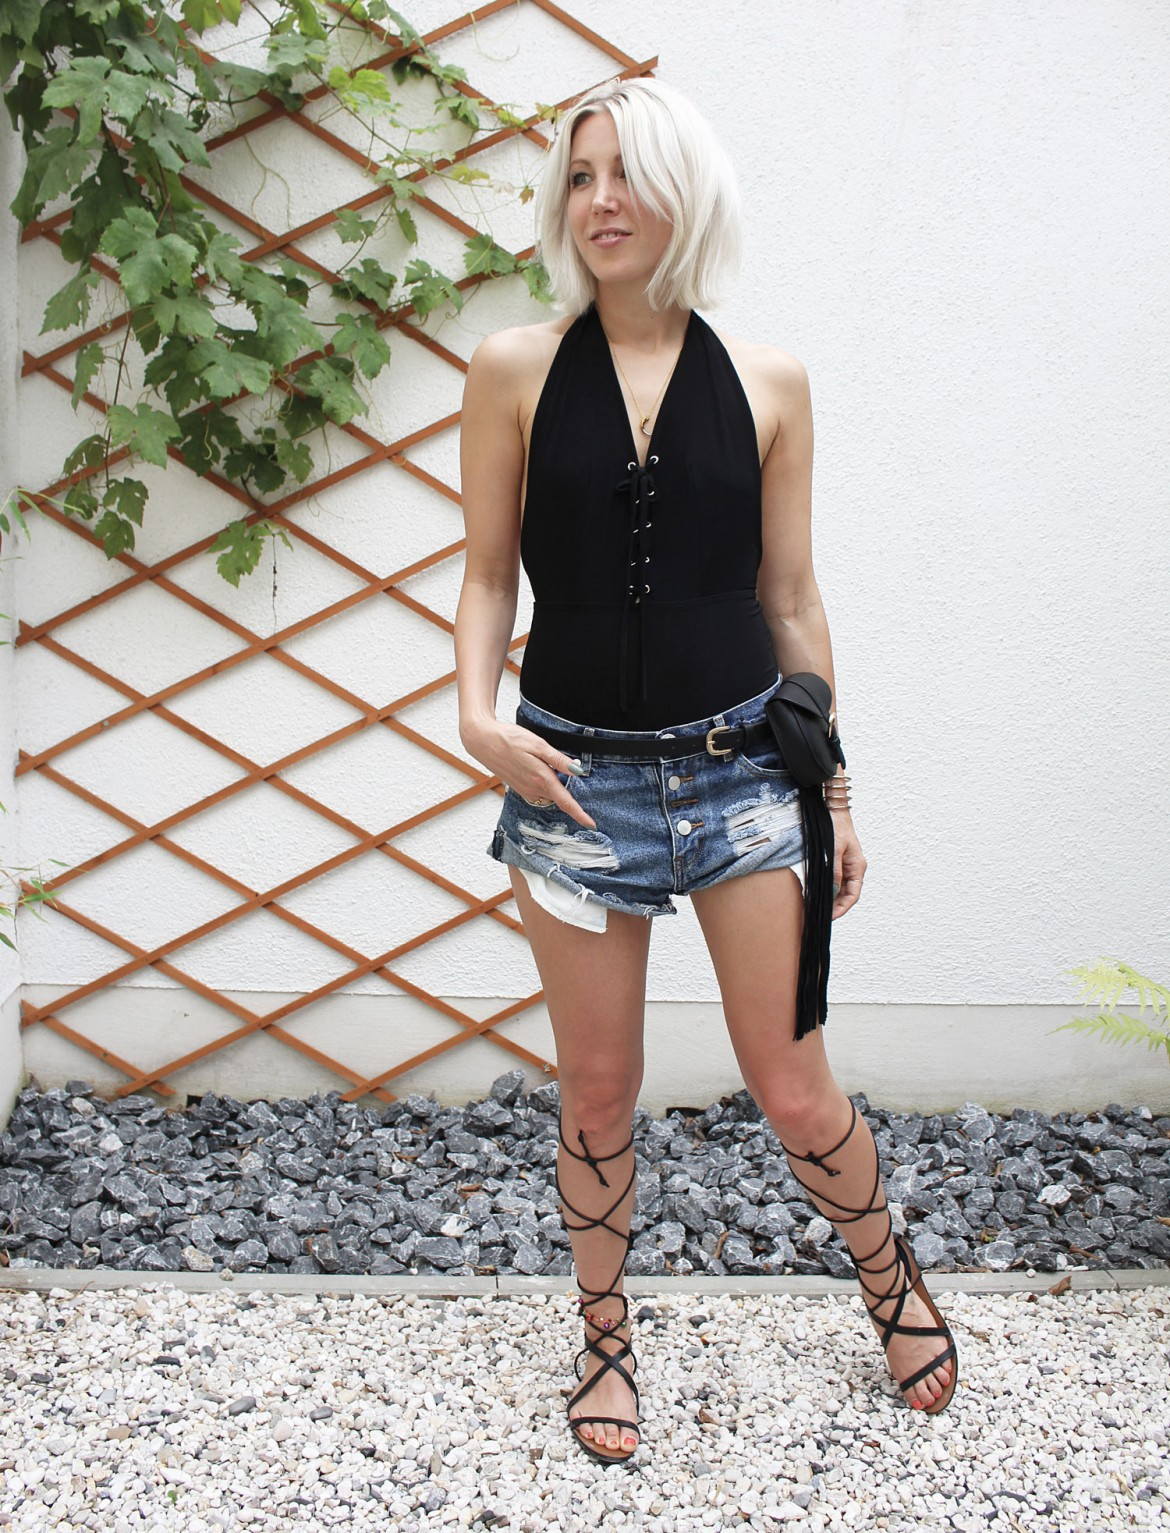 One Teaspoon Denim Shorts Lace Up Body Gladiator Sandals Fringes Look Summer Outfit Style